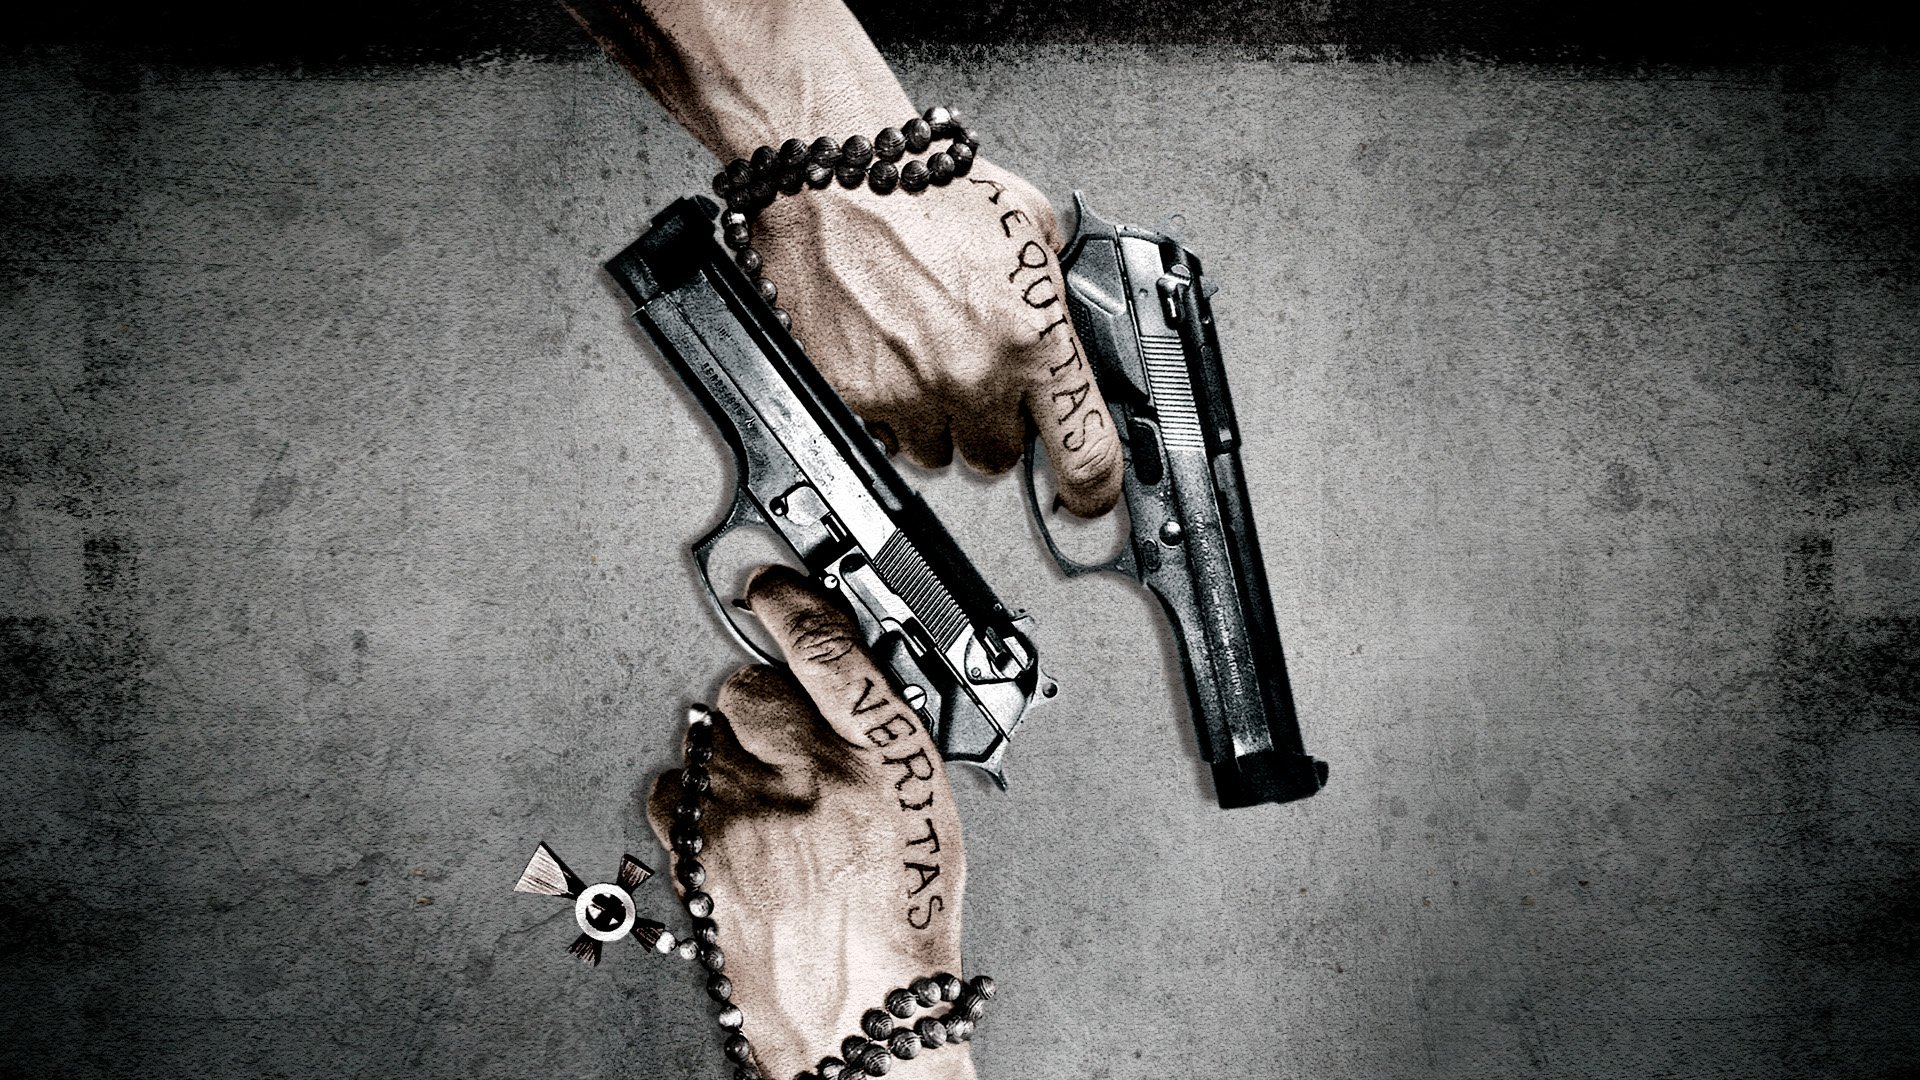 Boondock Saints HD Wallpaper